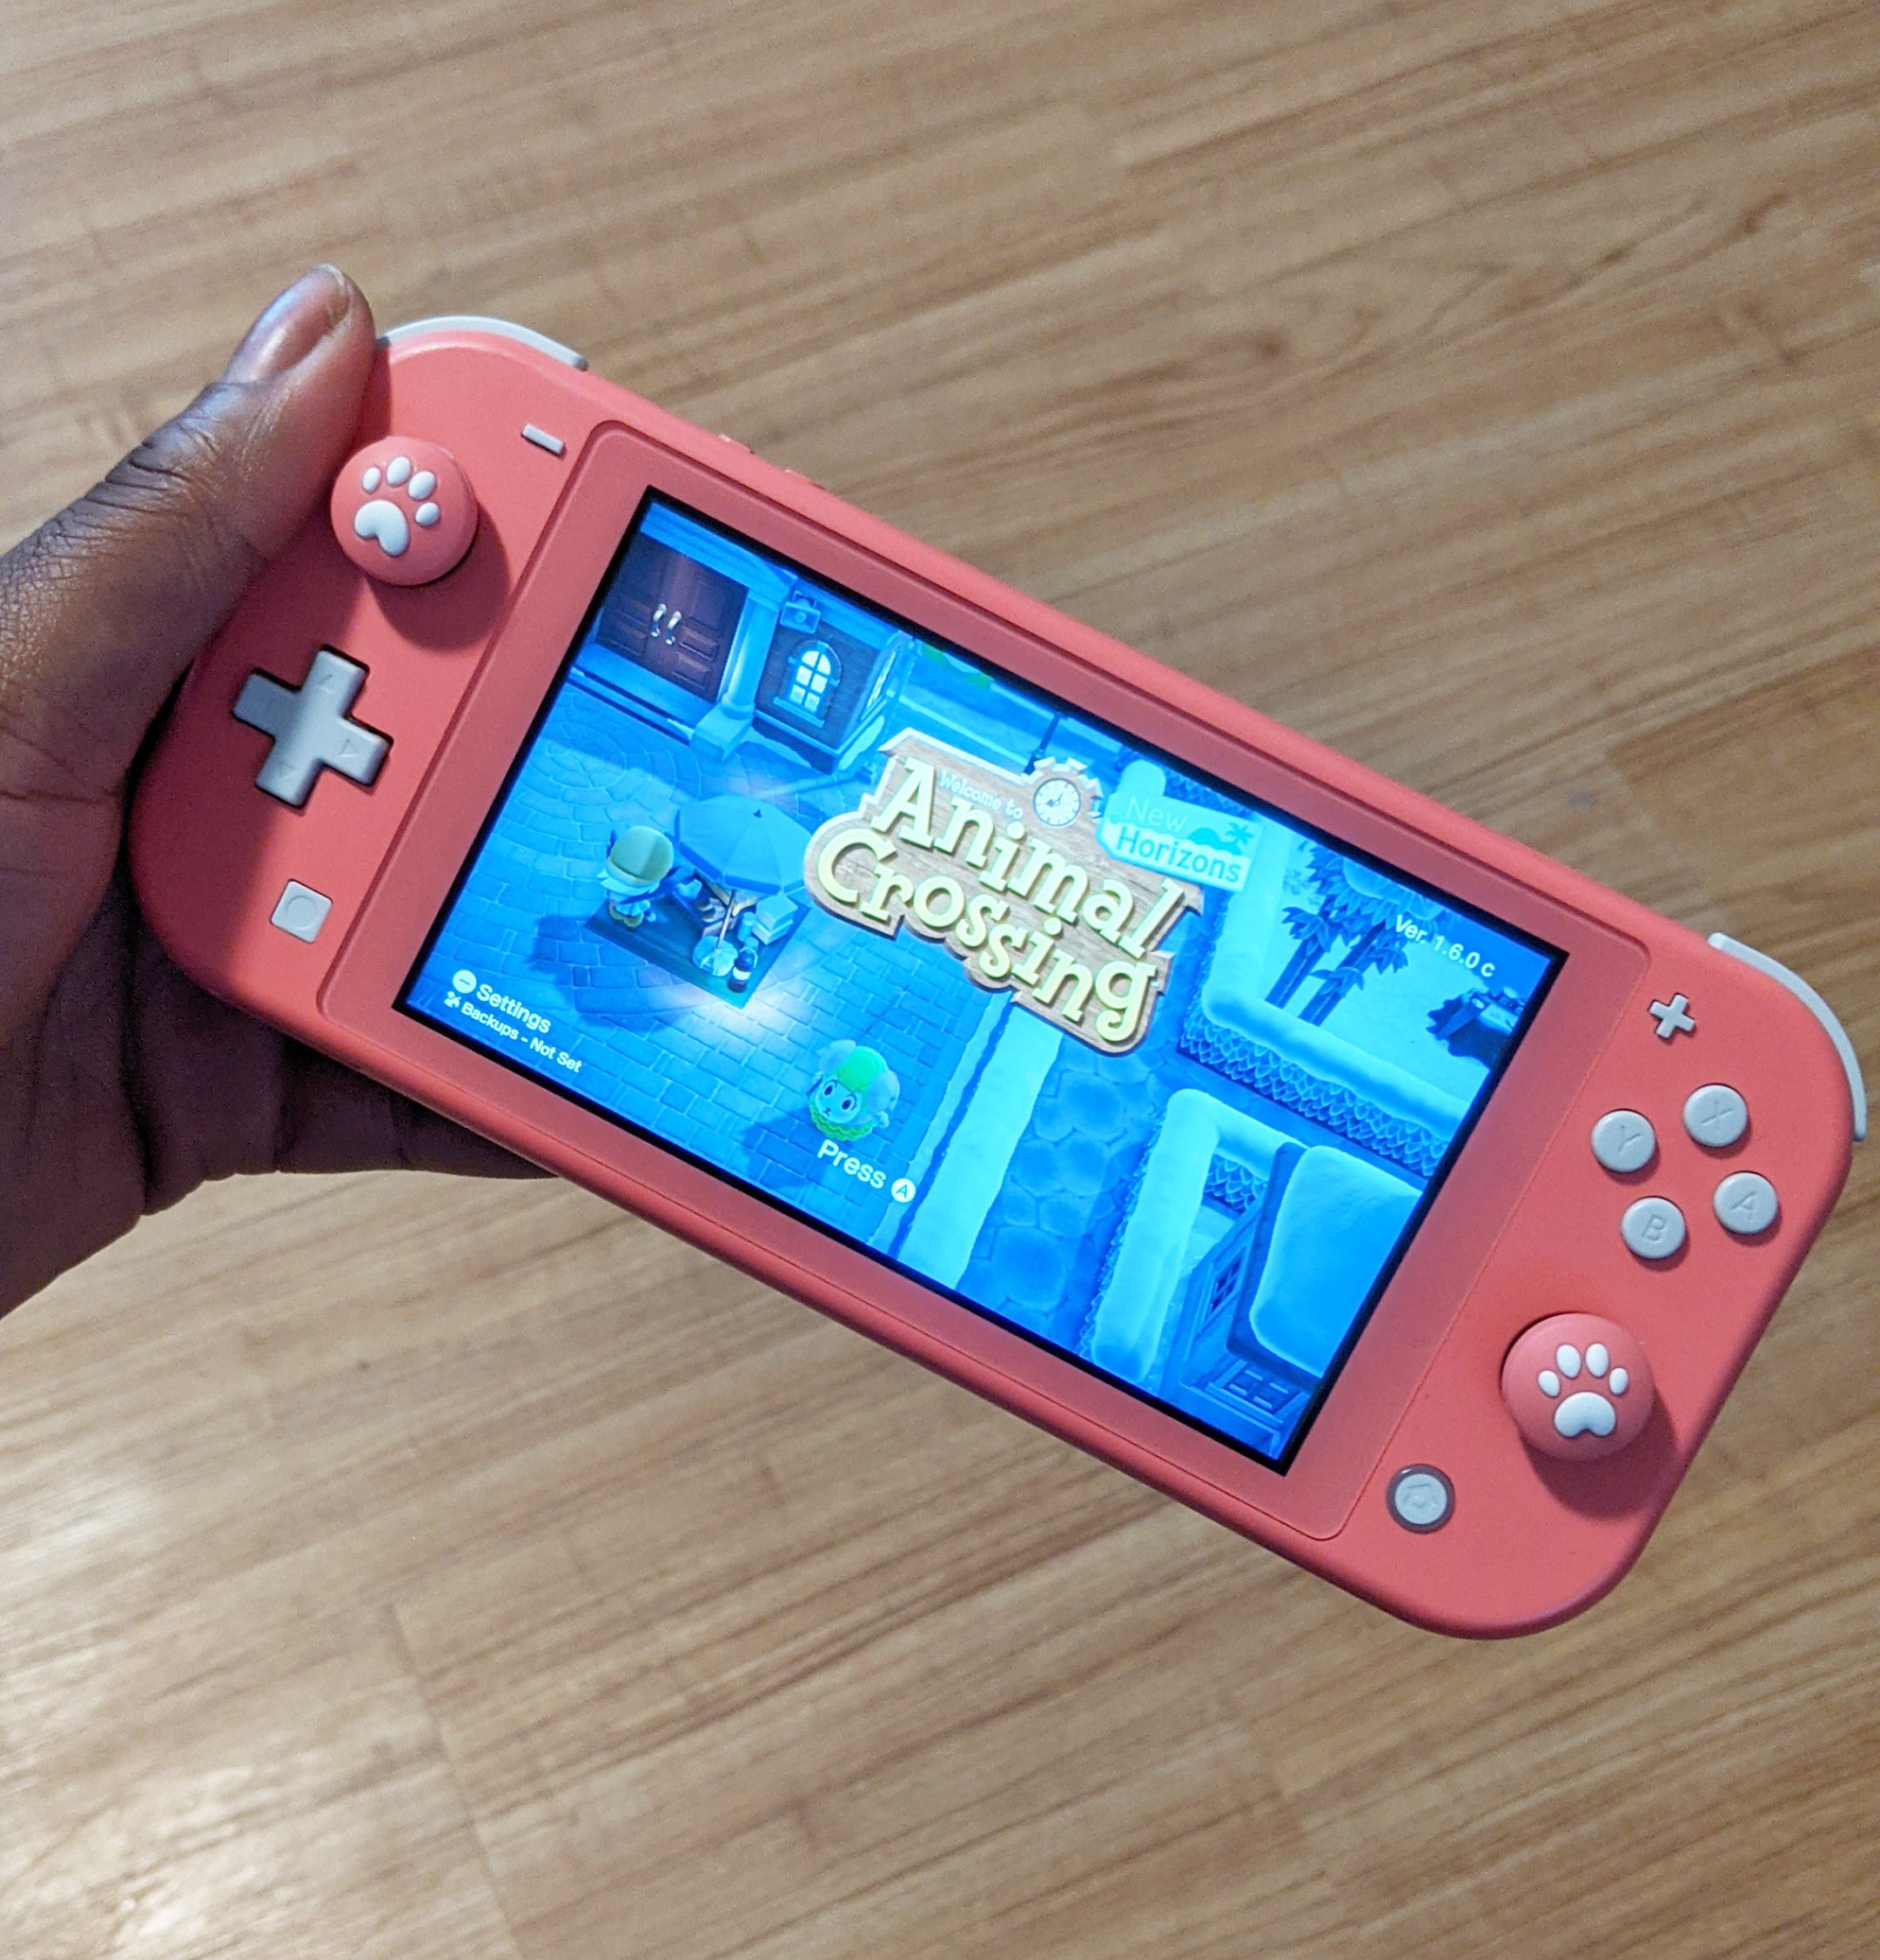 A person holding a Switch Lite console with silicone covers on the joysticks